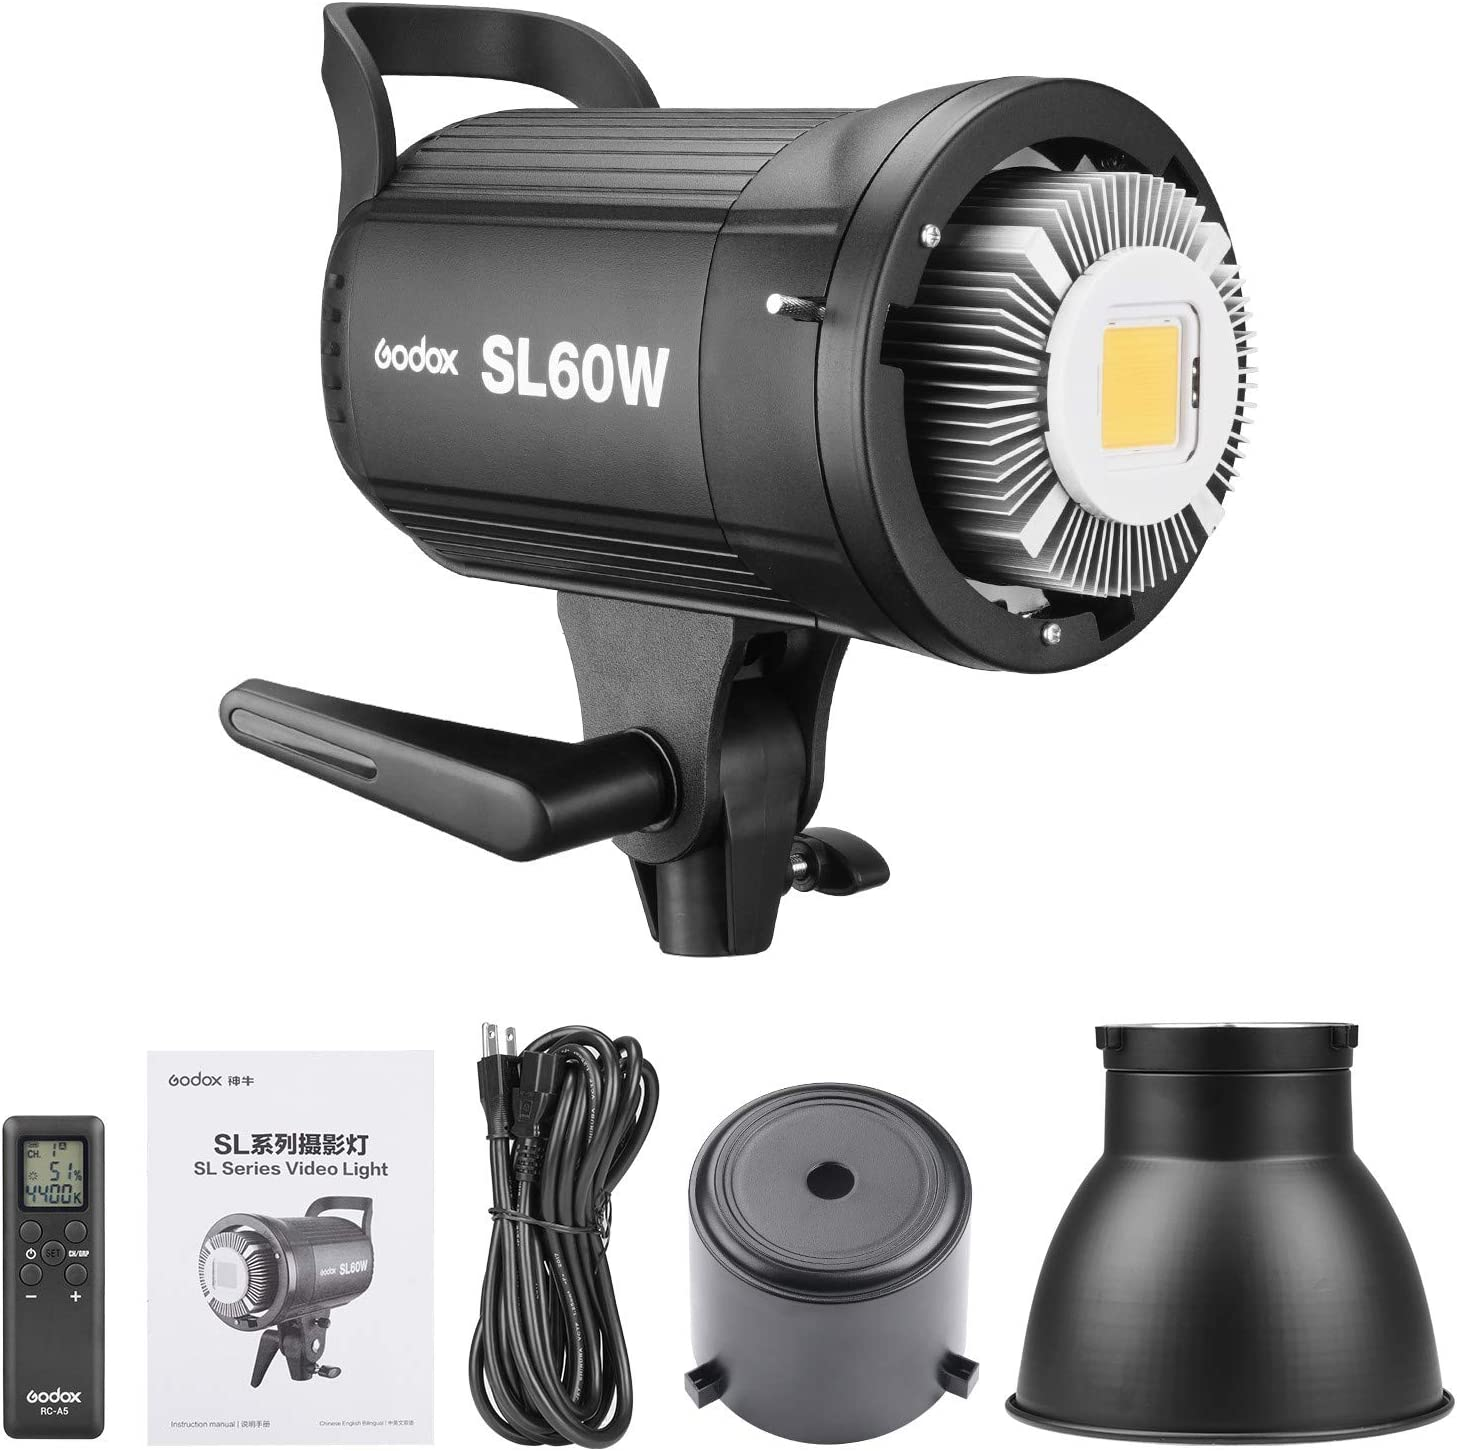 Amazon.com : Godox SL60W SL-60W Dimmable Continuous Output Lighting CRI95+  Qa>90 5600±300K Adjustable Daylight Studio LED Video Light Lamp  w/Controller + Bowens Mount for Video Recording Wedding Outdoor Shooting :  Camera &